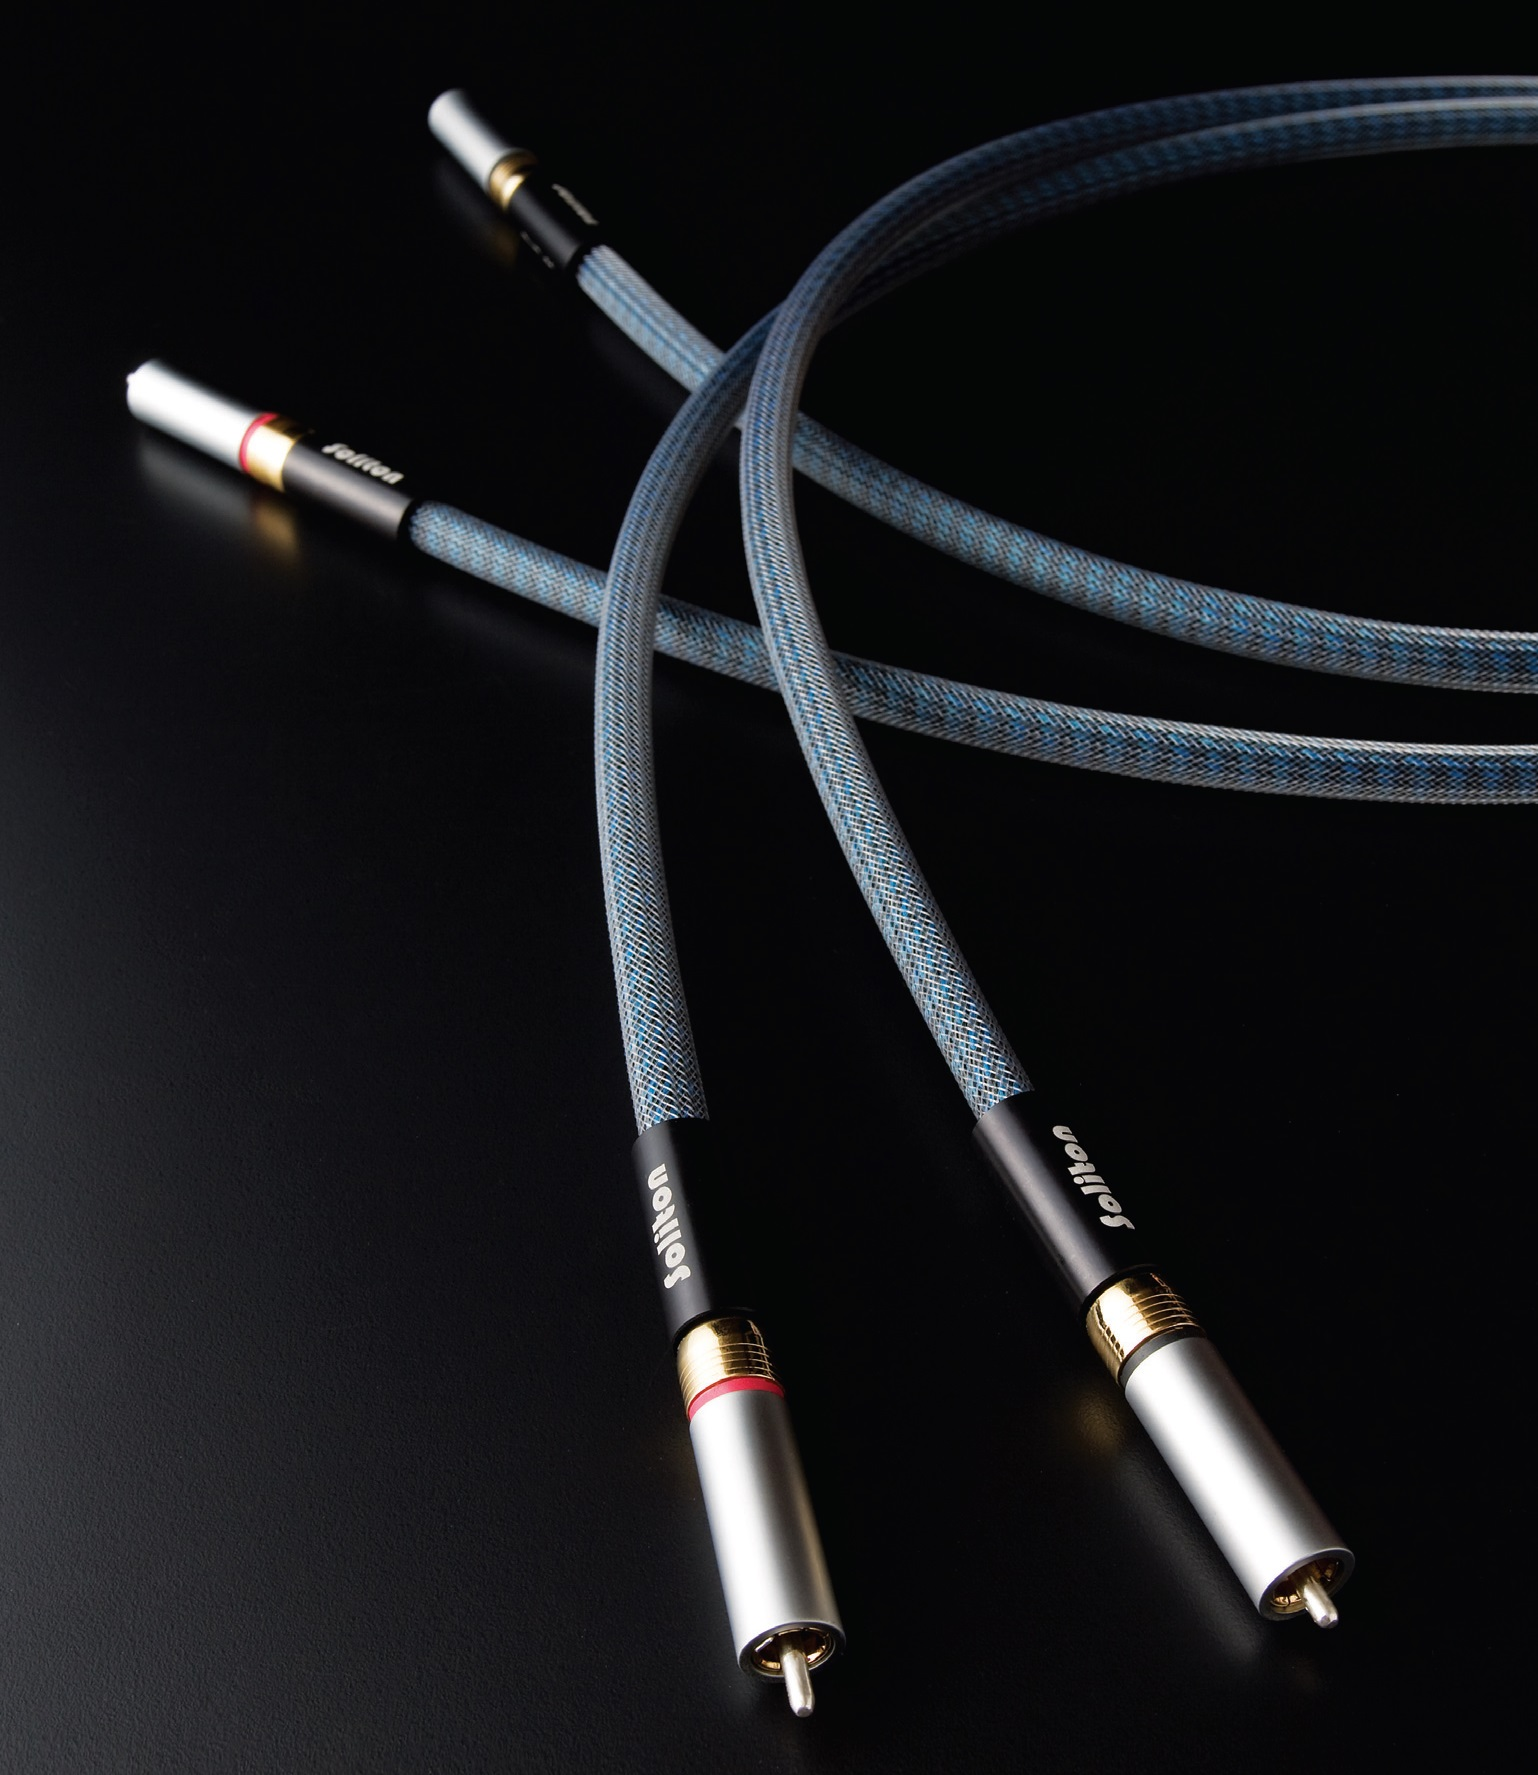 Interconnection Cable - Pauli-S1